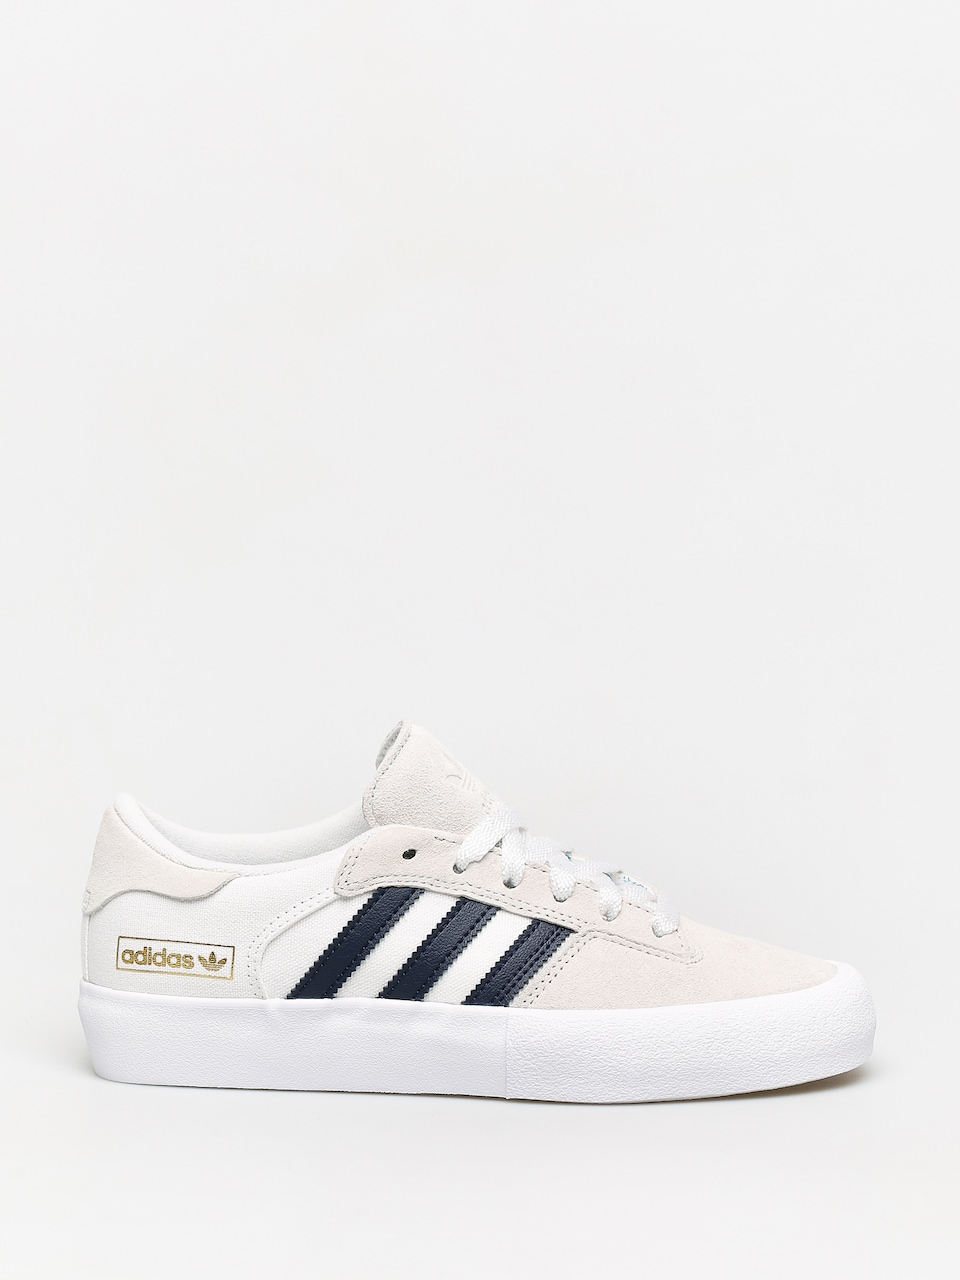 adidas: buty skate, sneakersy, t shirty   SUPERSKLEP